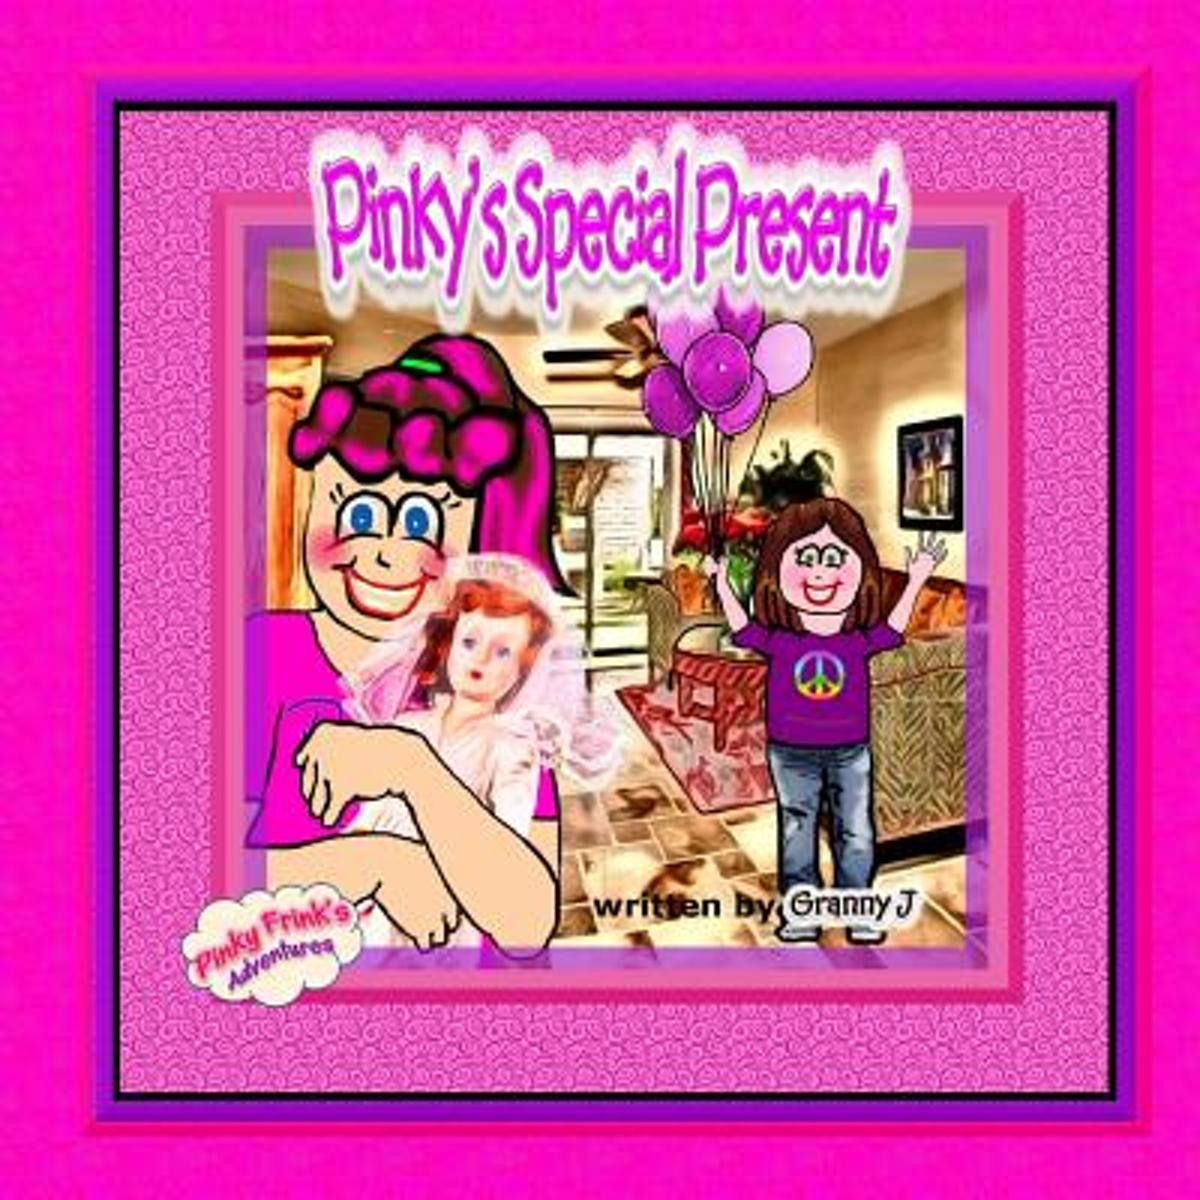 Pinky's Special Present